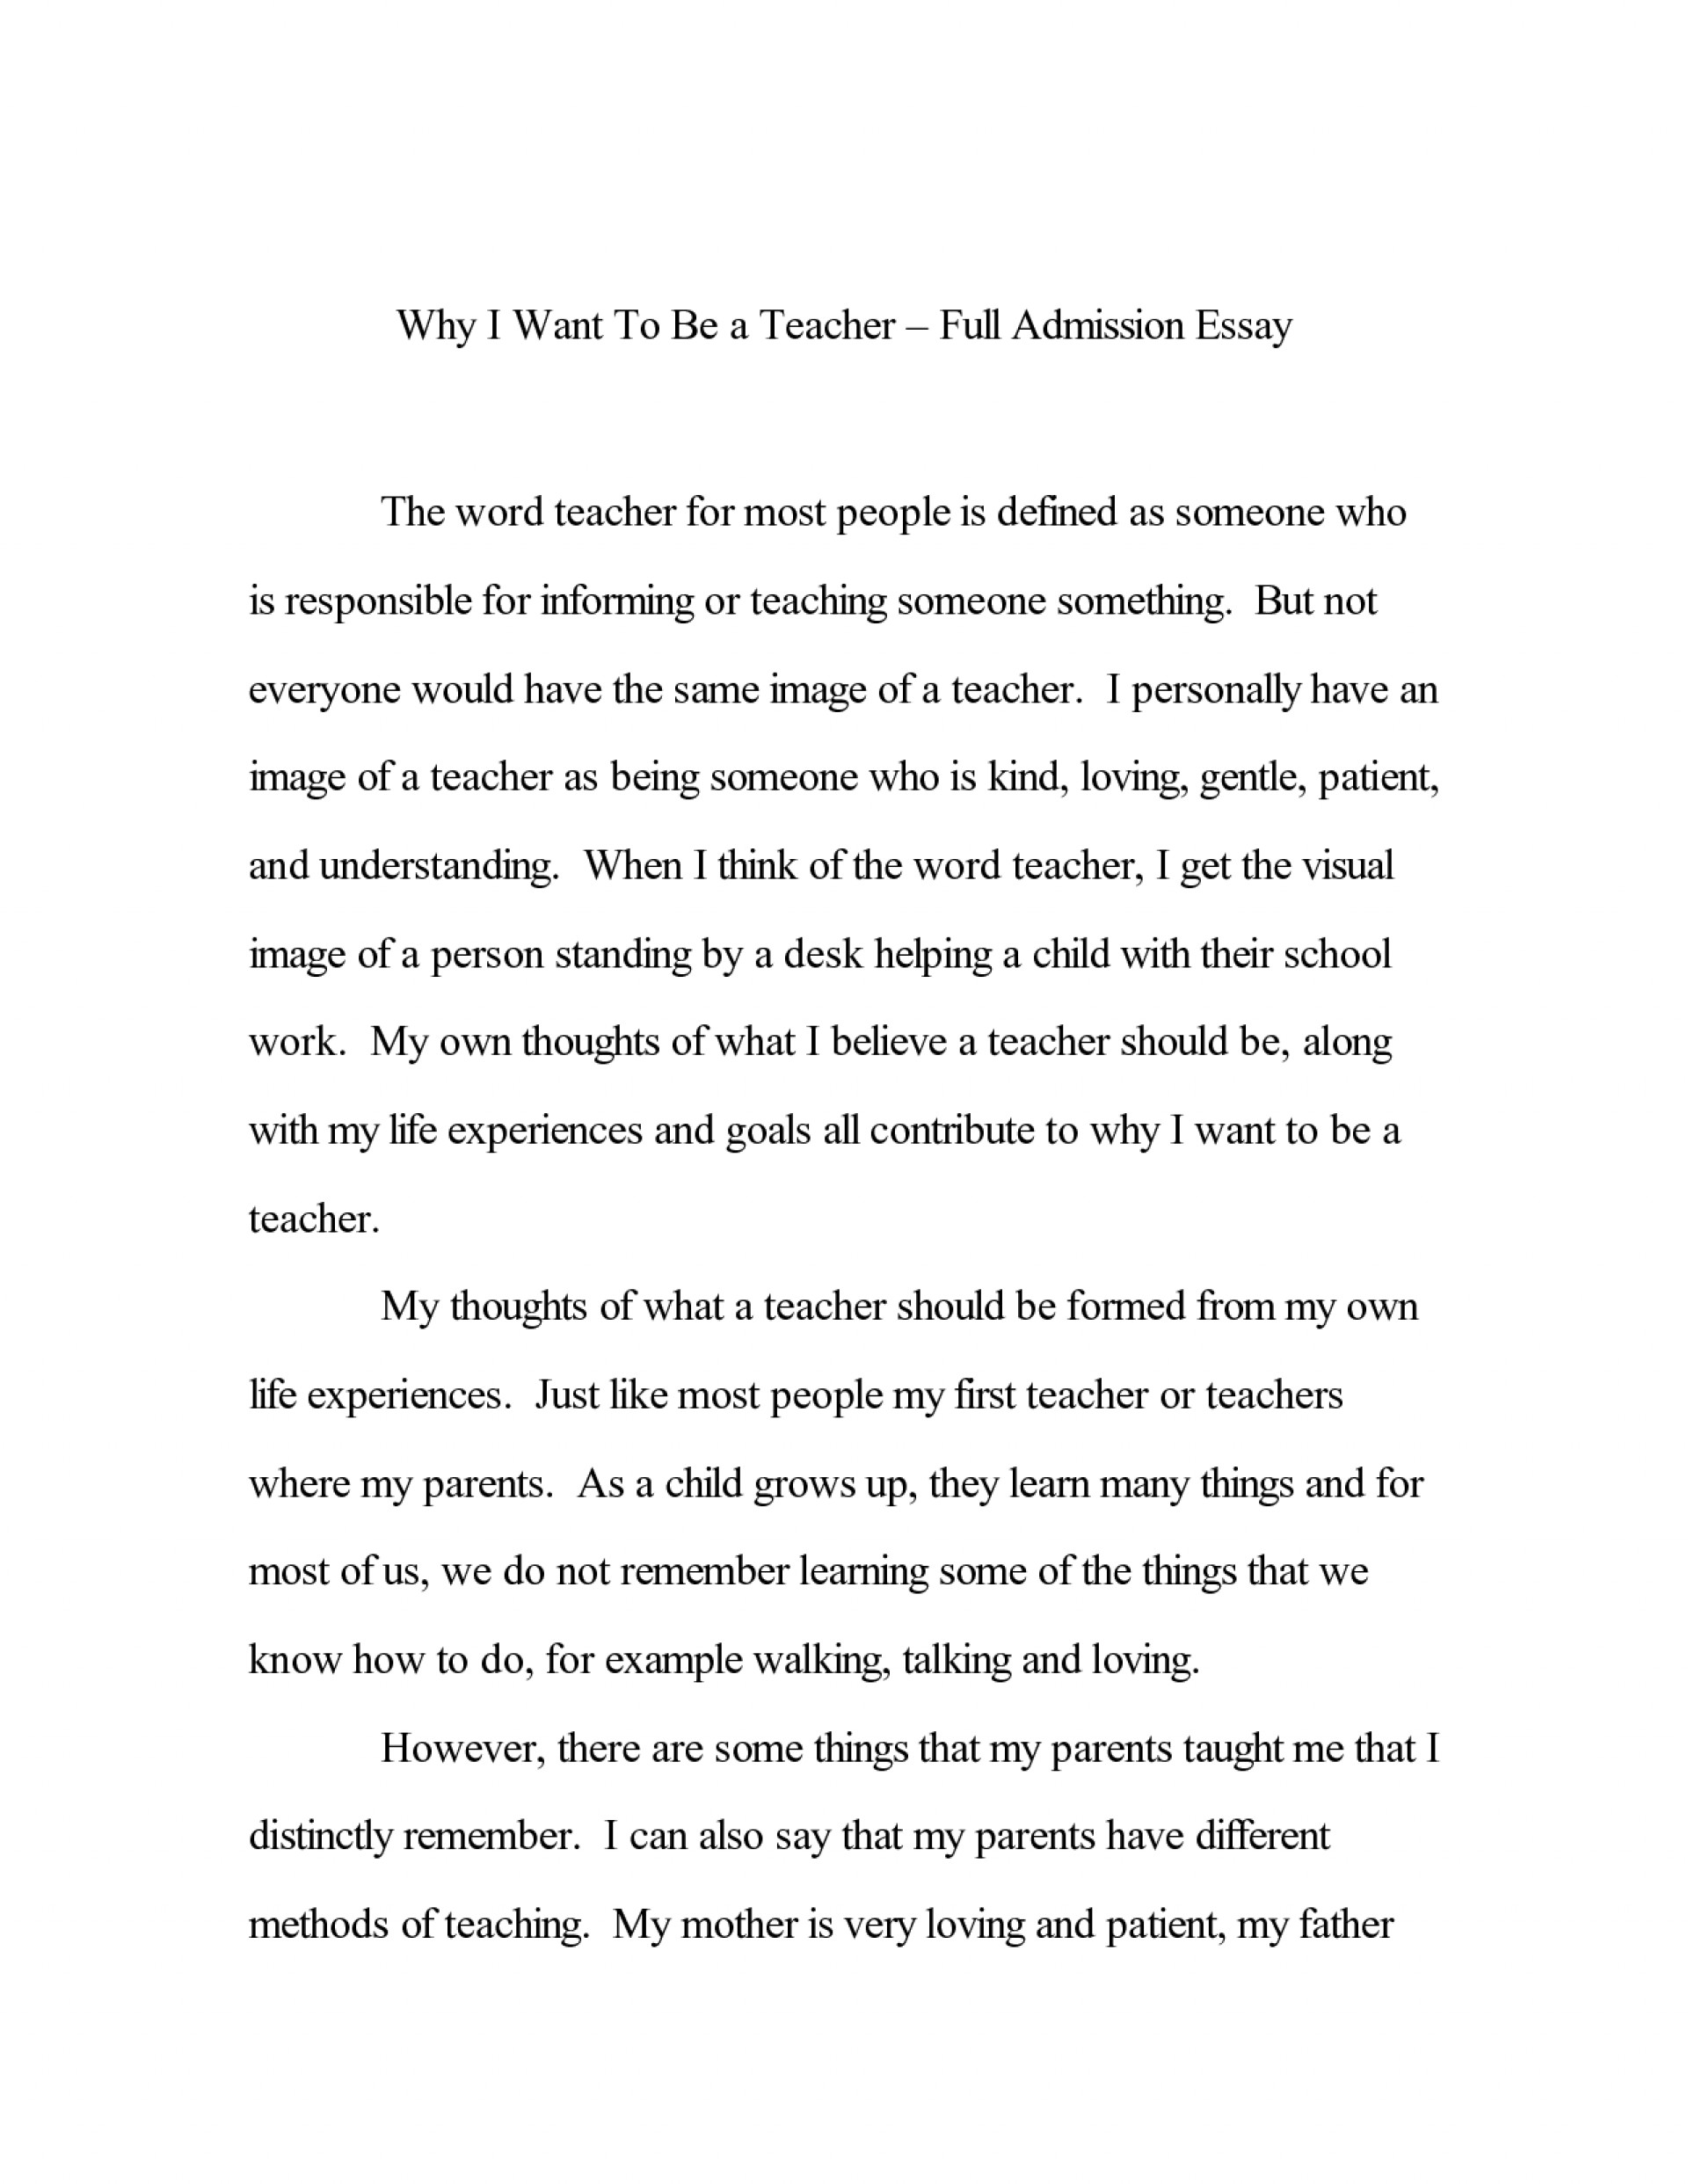 006 Zcwrpapbvx College Entry Essay Amazing Admissions About Autism Application Tips Admission Examples Ivy League 1920